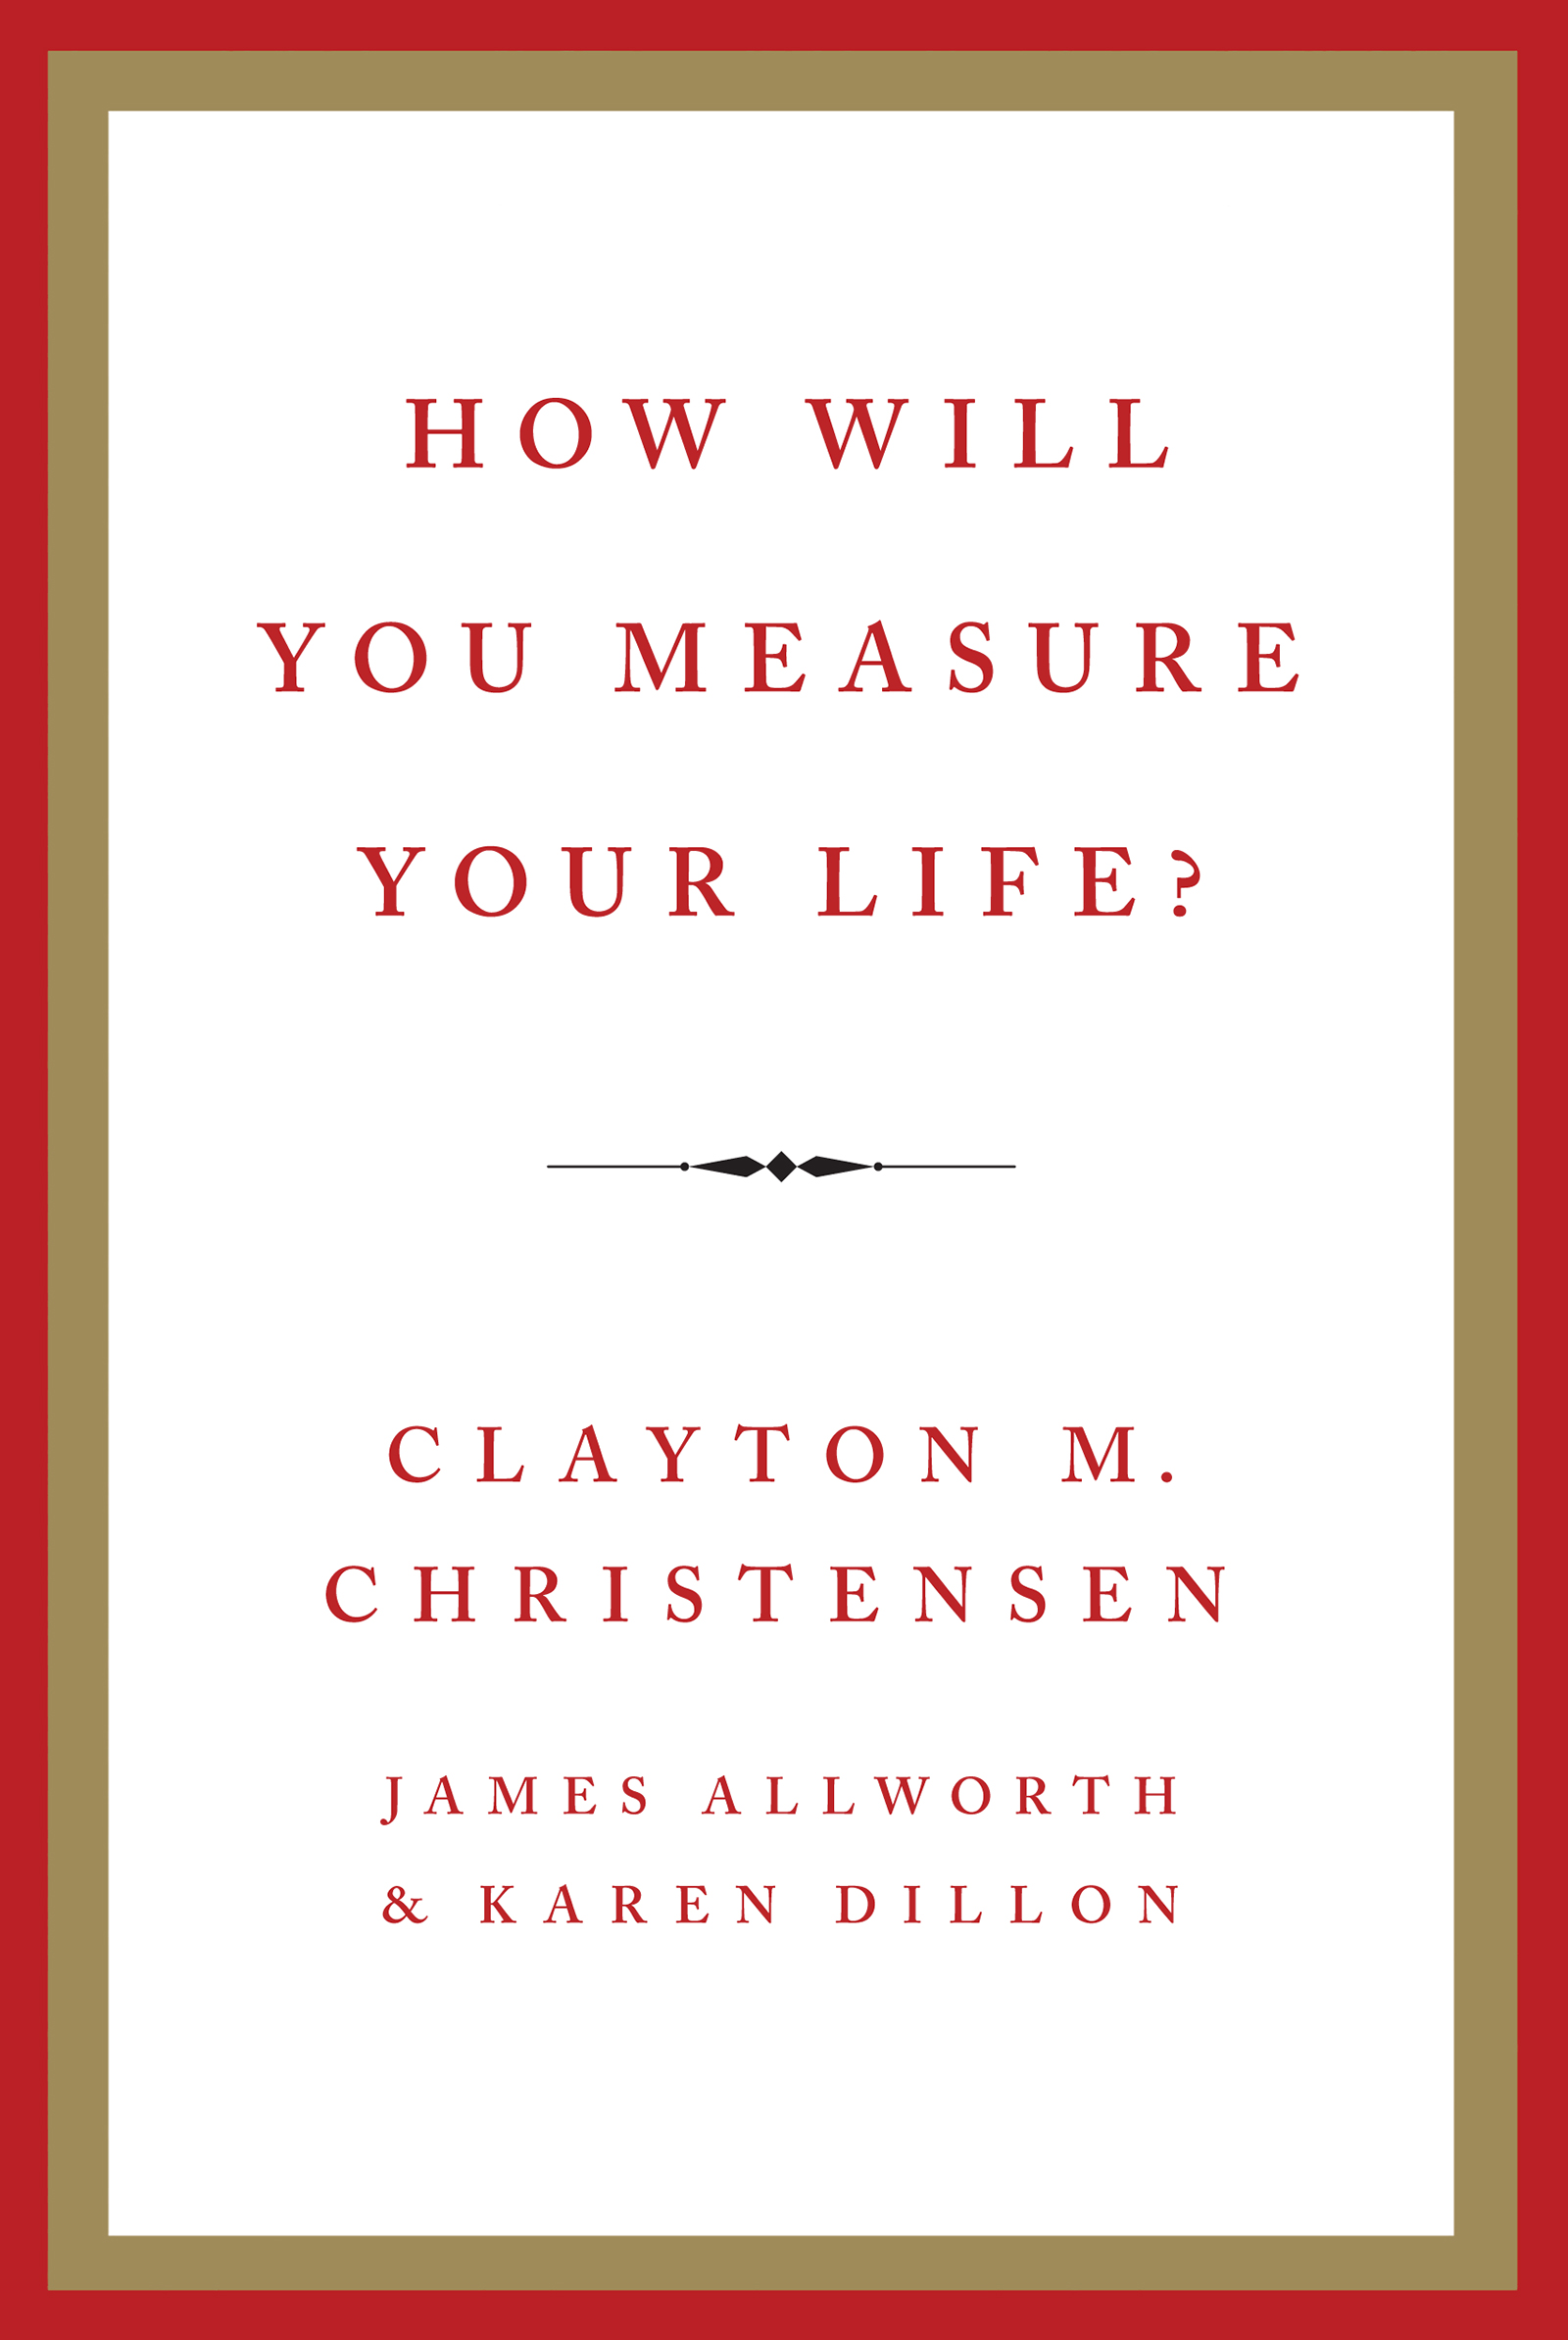 Download Ebook How Will You Measure Your Life? by Clayton M. Christensen Pdf